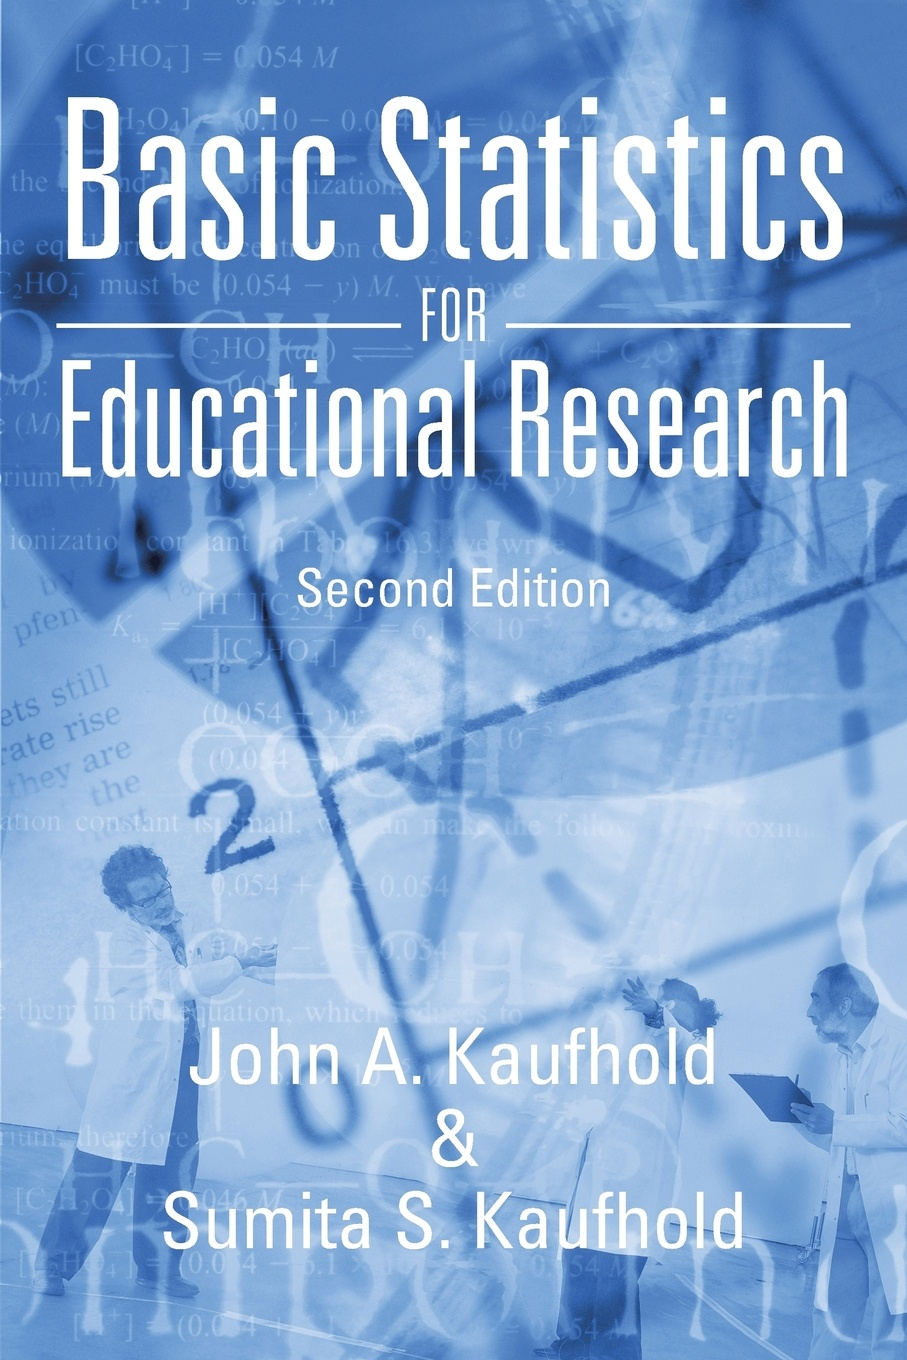 John a. Kaufhold, Sumita S. Kaufhold Basic Statistics for Educational Research. Second Edition schuenemeyer john statistics for earth and environmental scientists